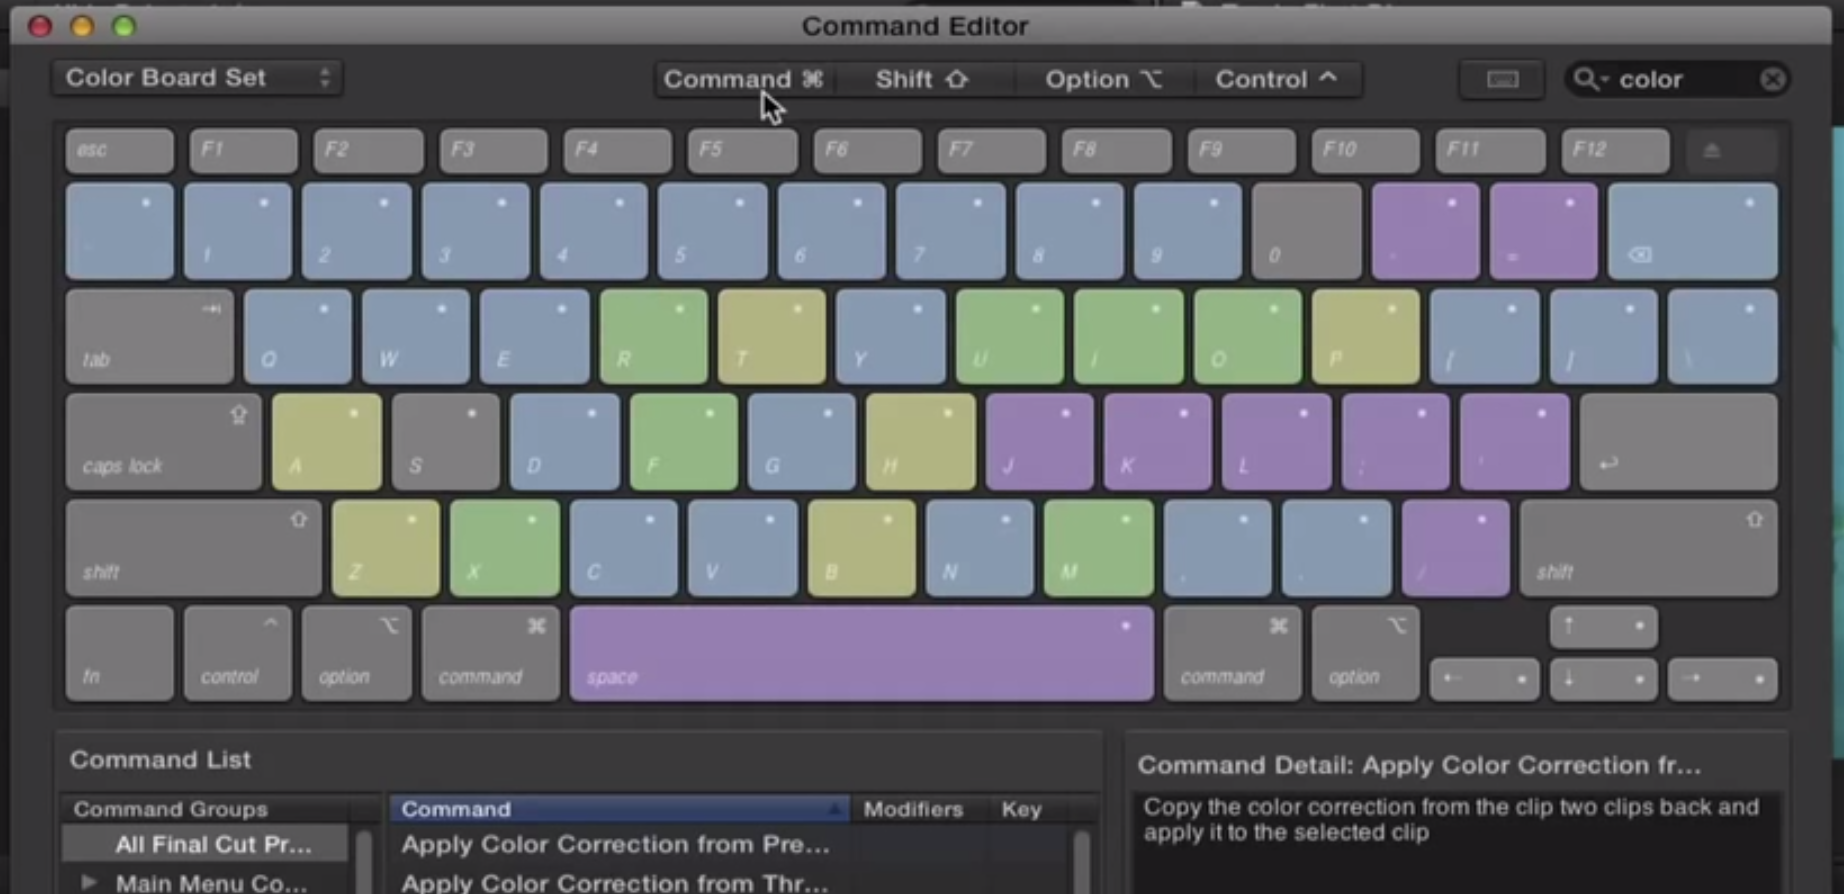 Final Cut Pro X Video Tutorial: Keyboard Shortcuts for ...